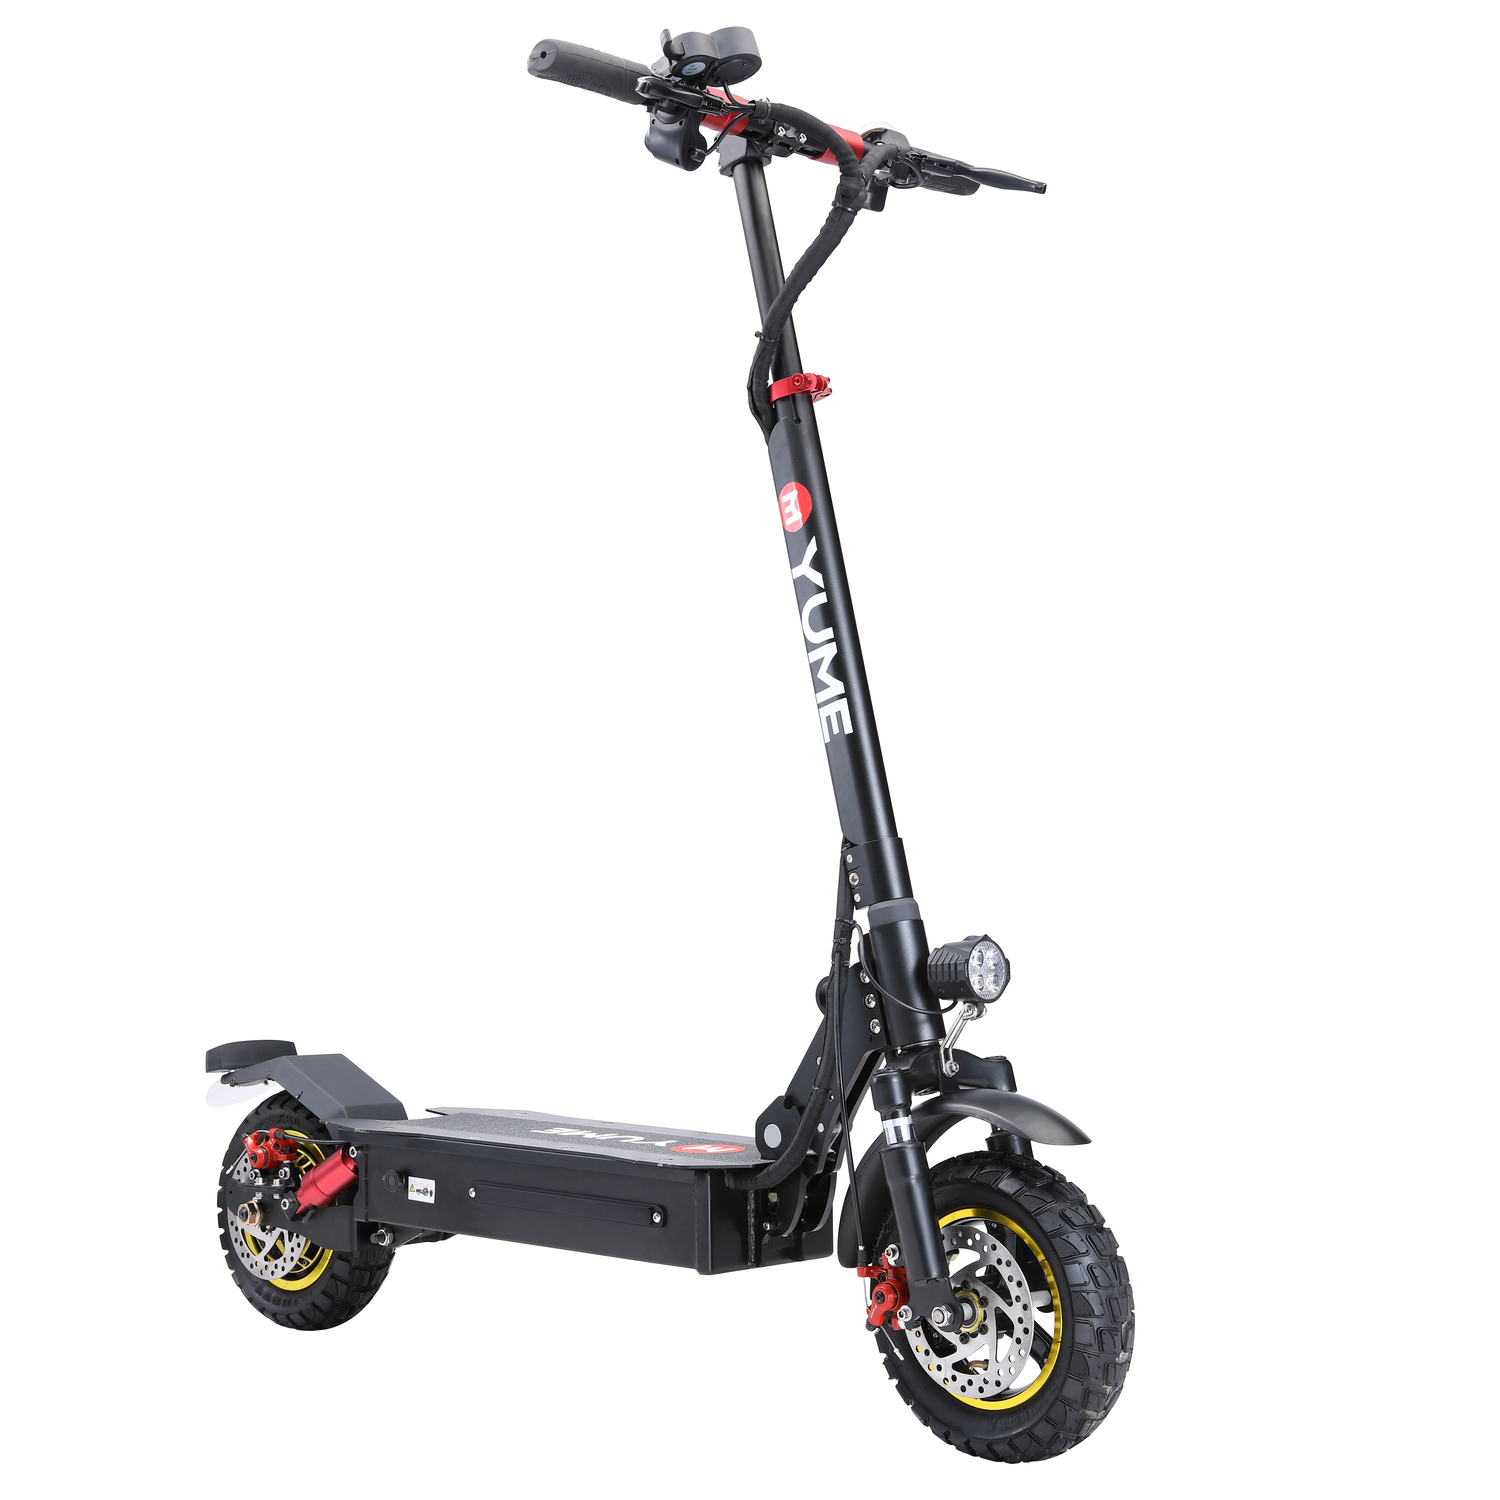 YUME S10 13Ah 48V 1000W Folding Electric Scooter 45-50Km/H Top Speed 35-40Km Range Mileage Double Brake System Max Load 120Kg